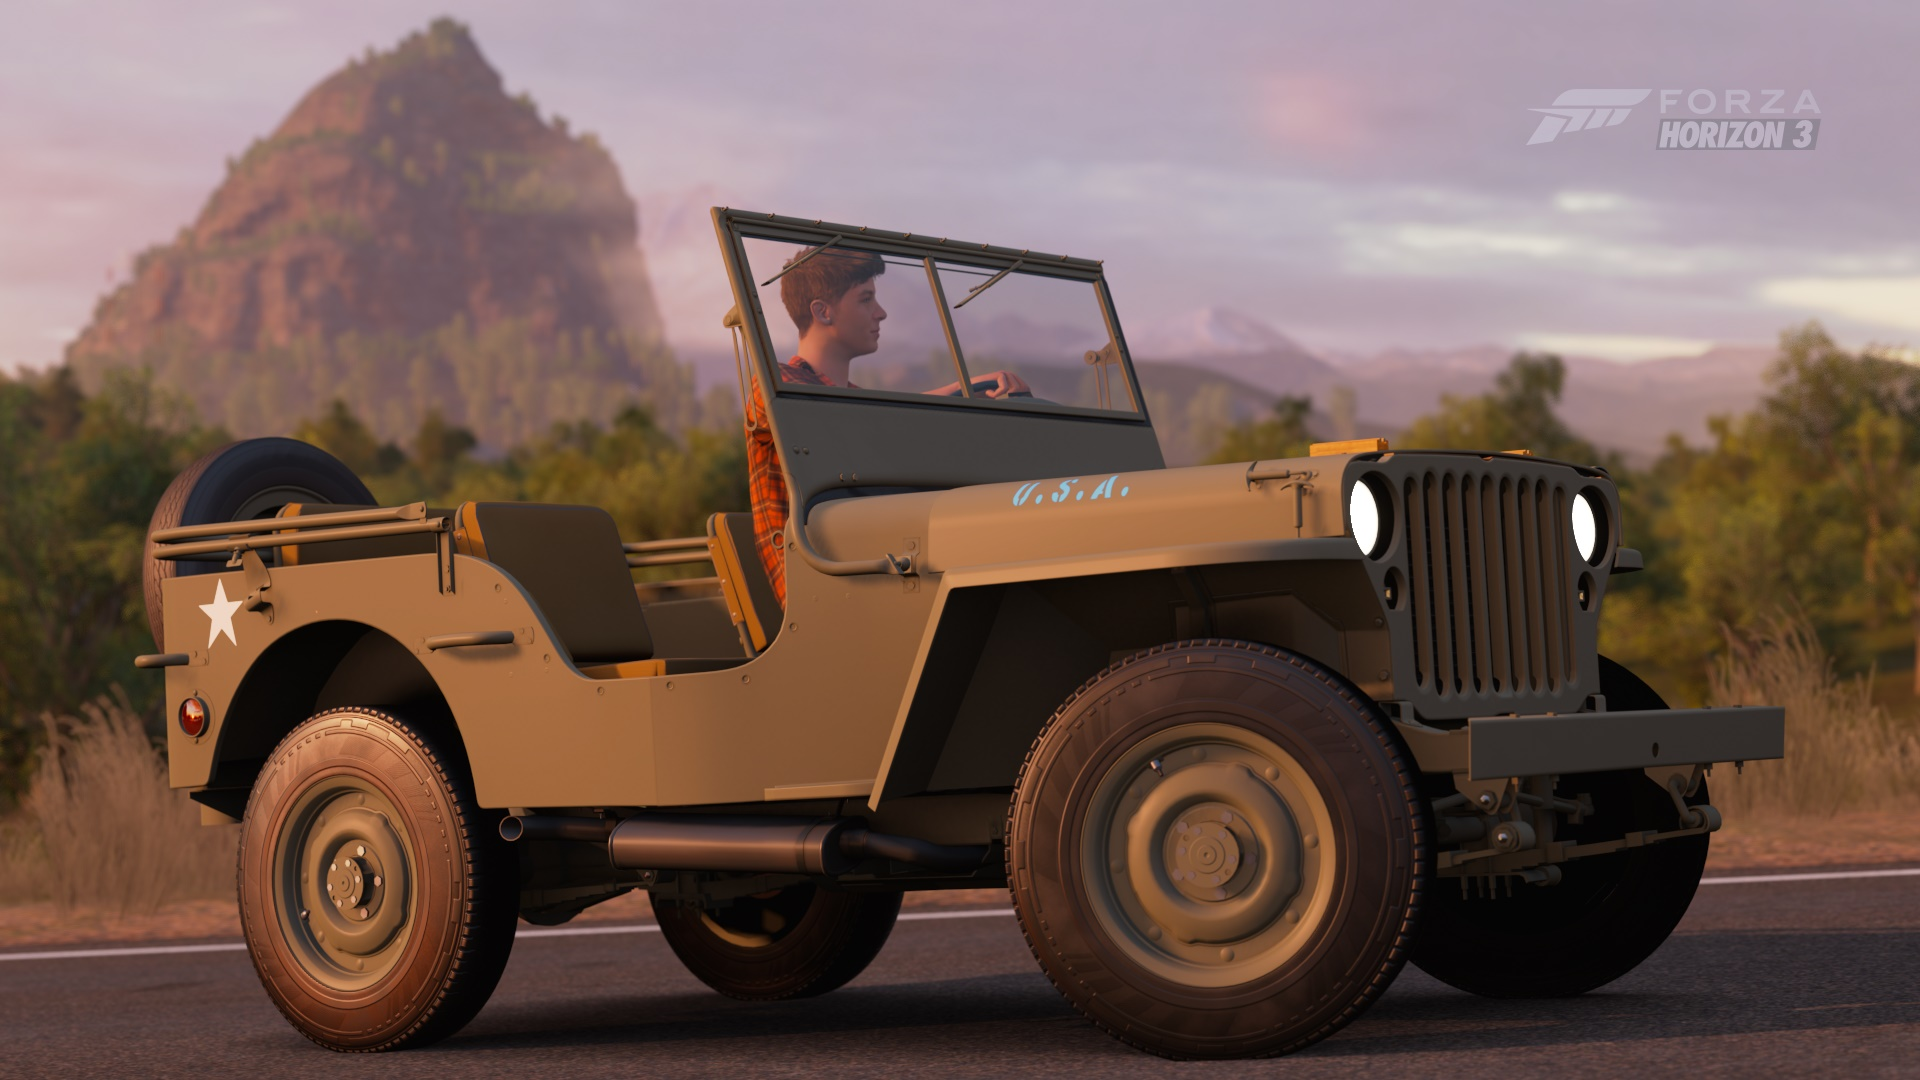 1945 jeep willys mb photo by brokenvegetable